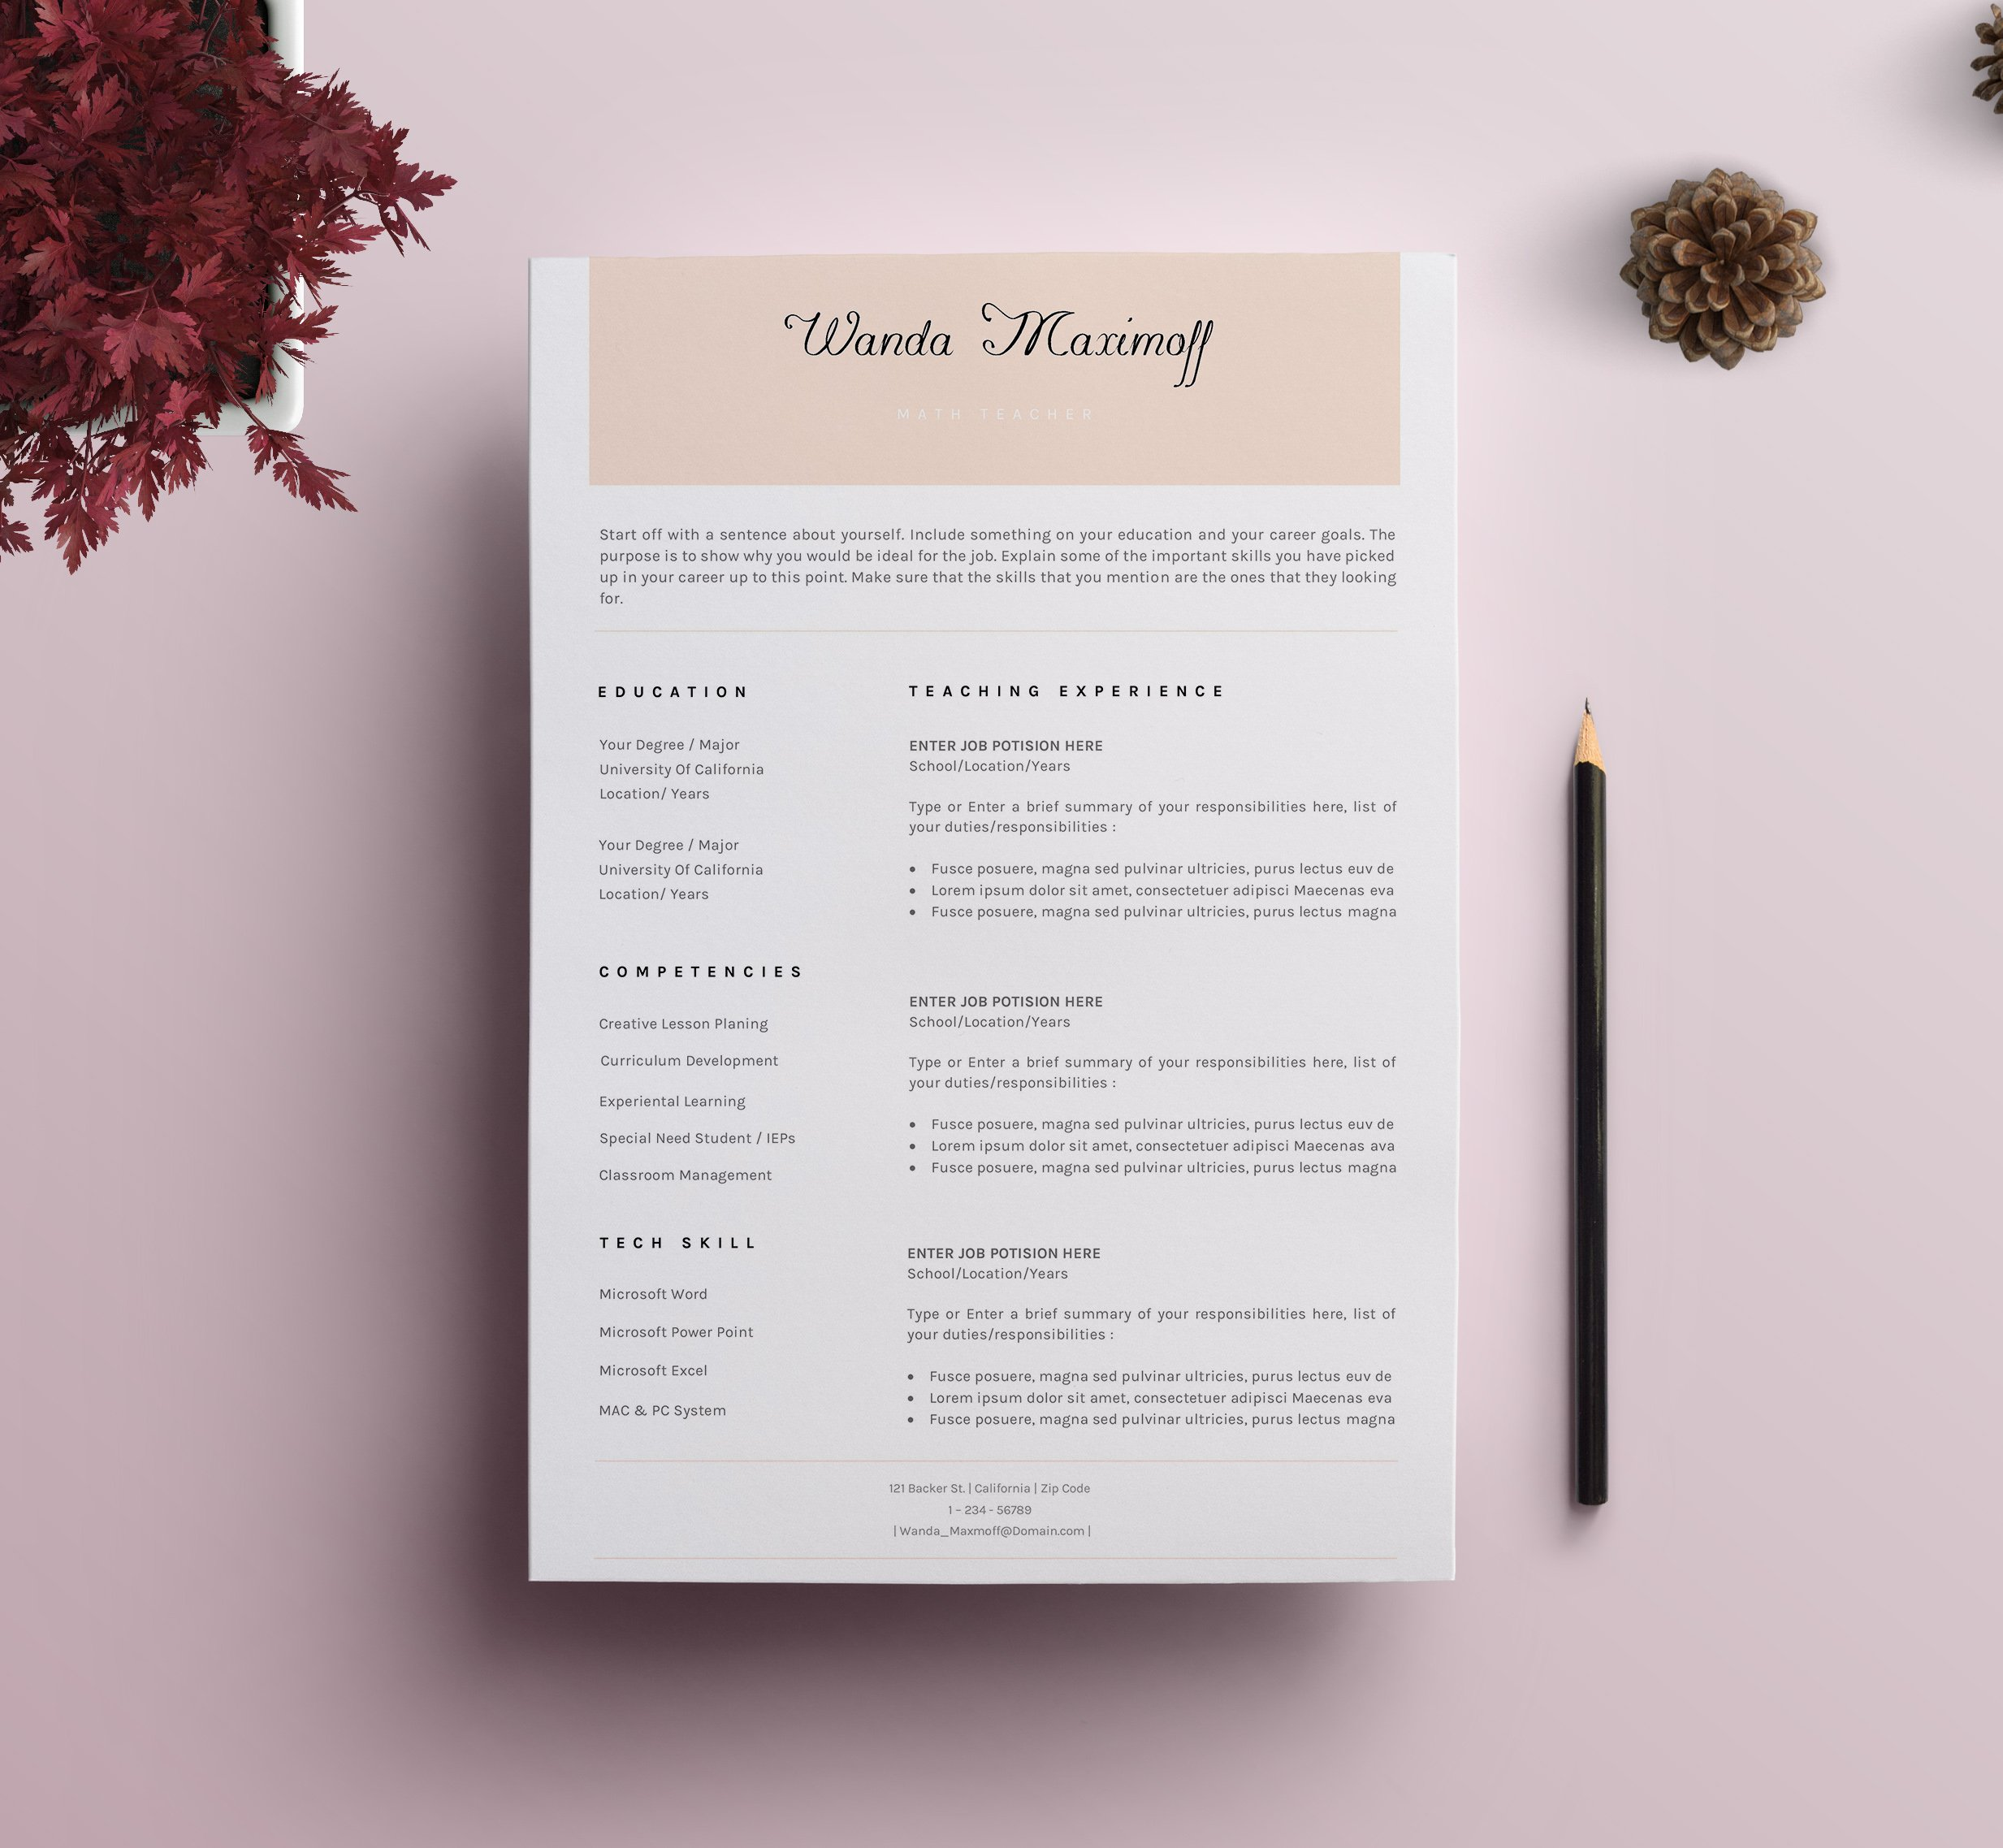 interesting resume templates professional resume cv template 9 resume templates 22557 | resume template depan bange with tanemant